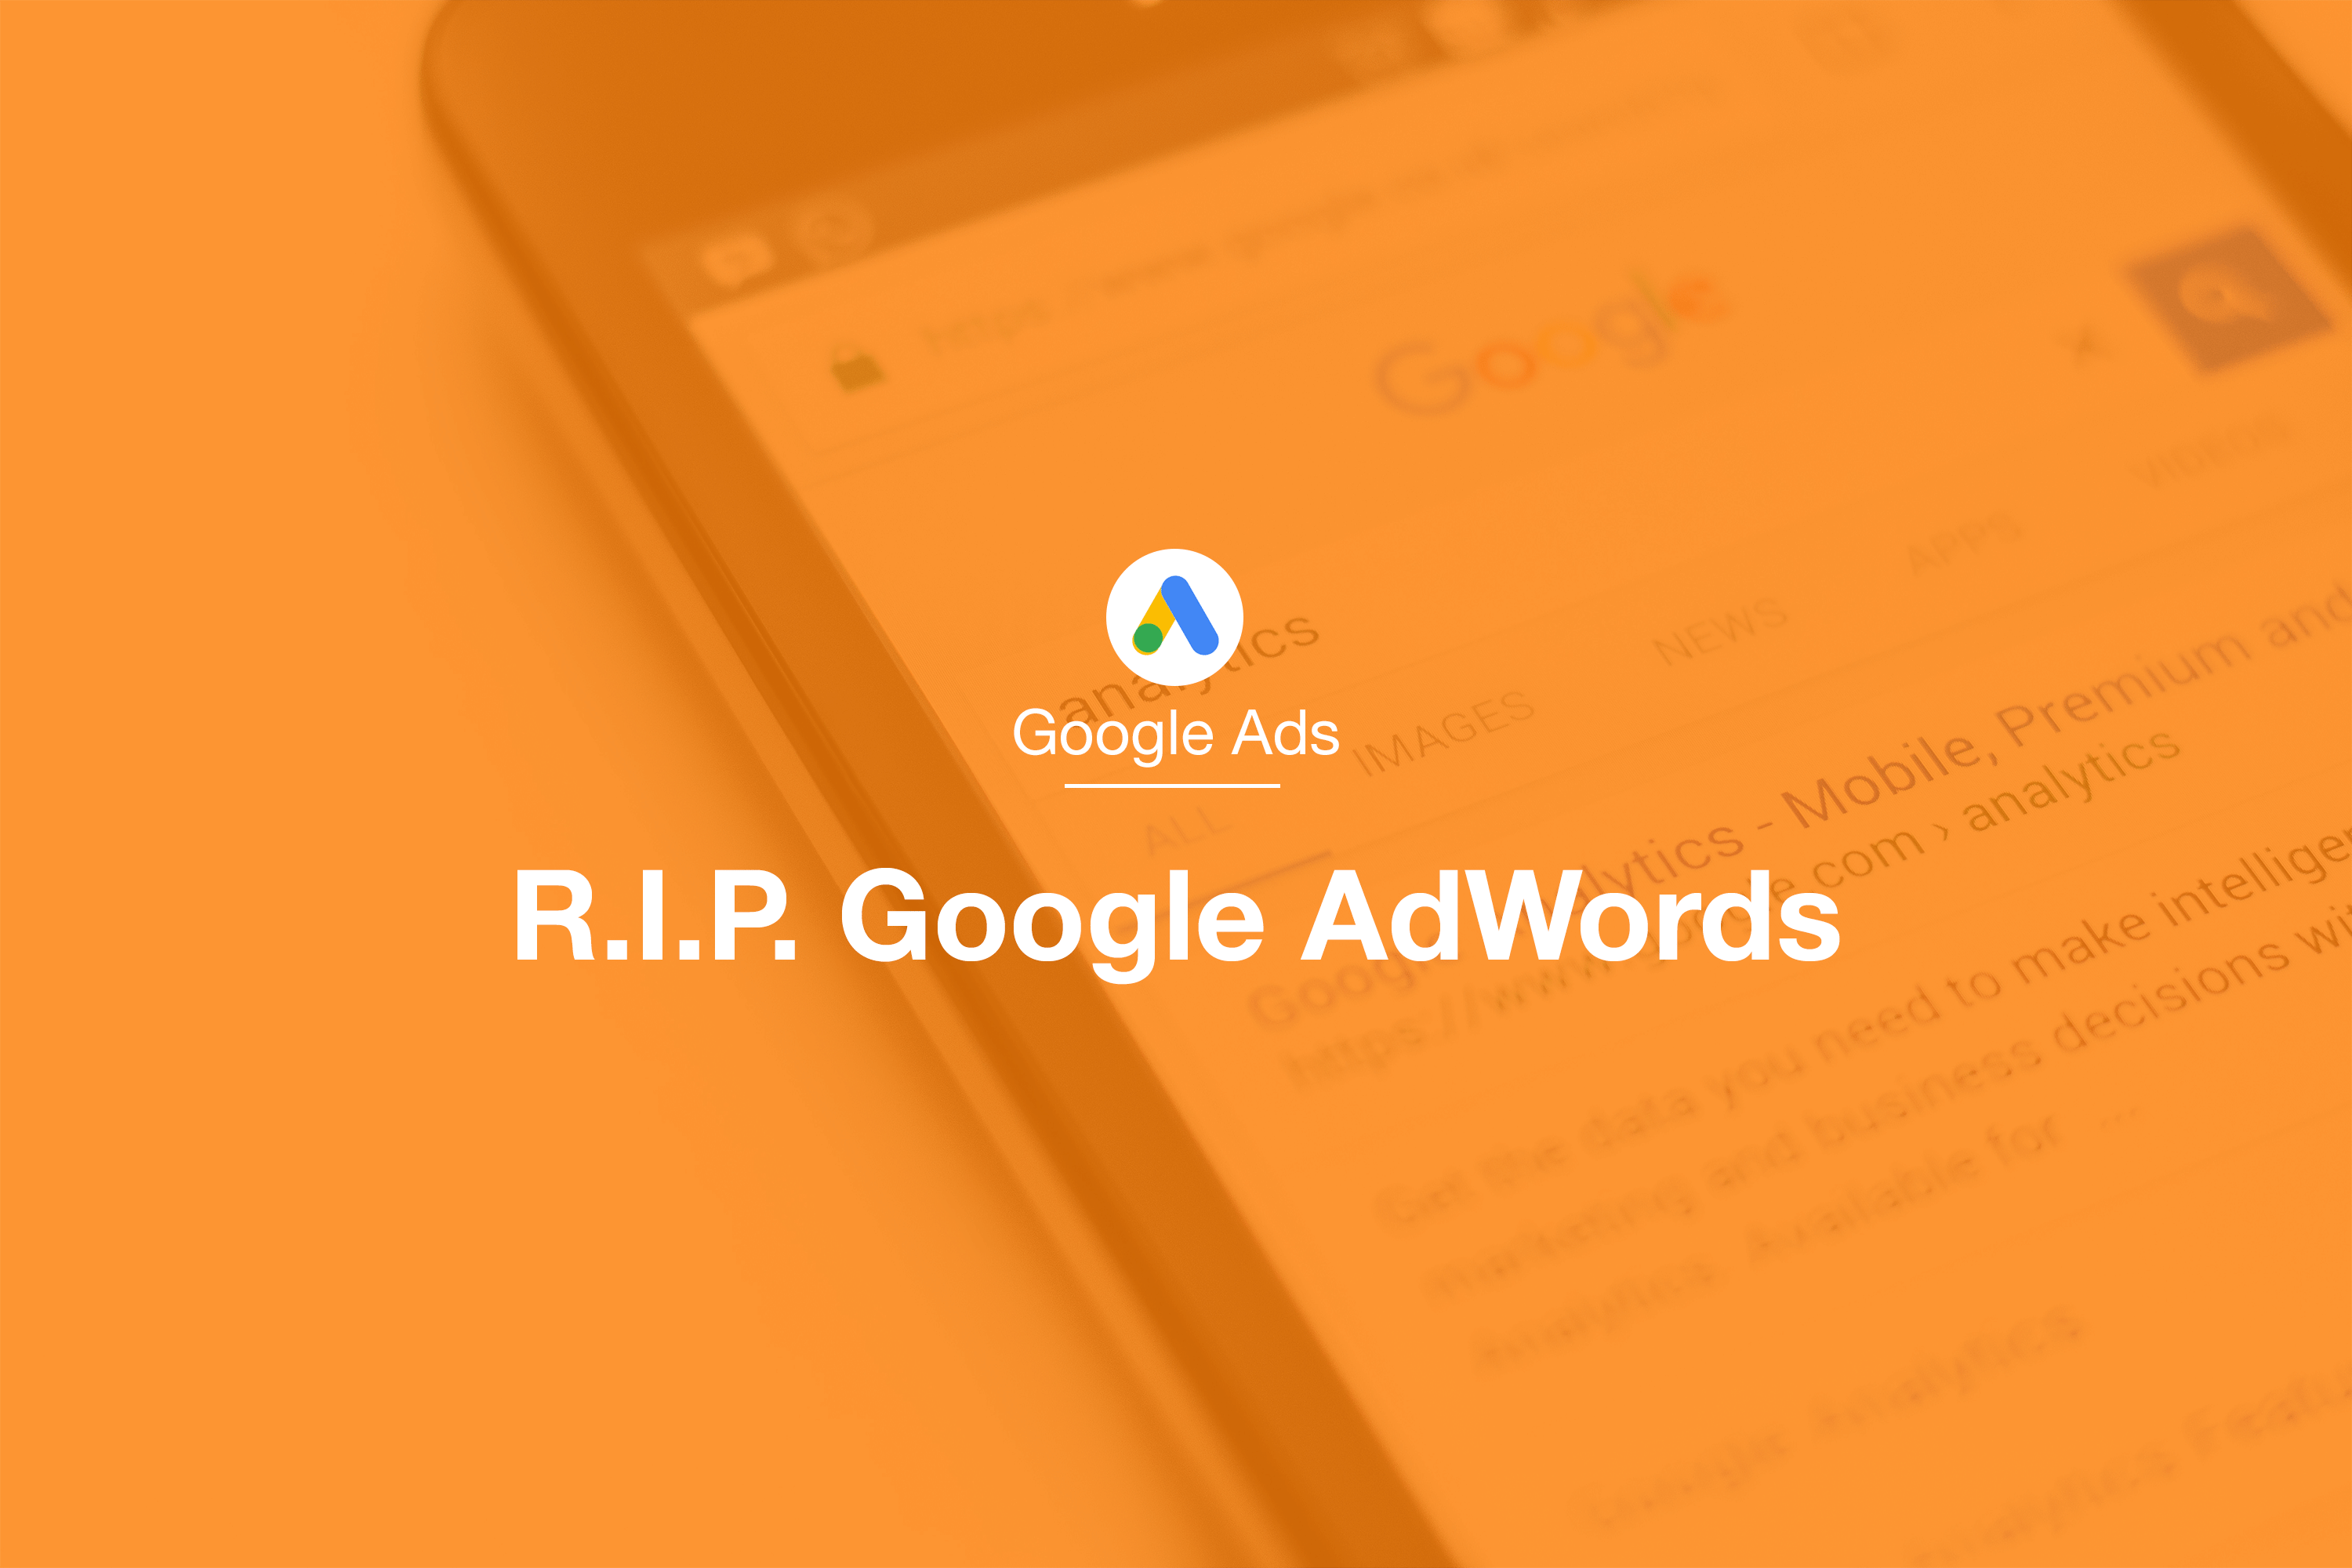 Say Goodbye to Google Adwords, Say Hello to Google Ads